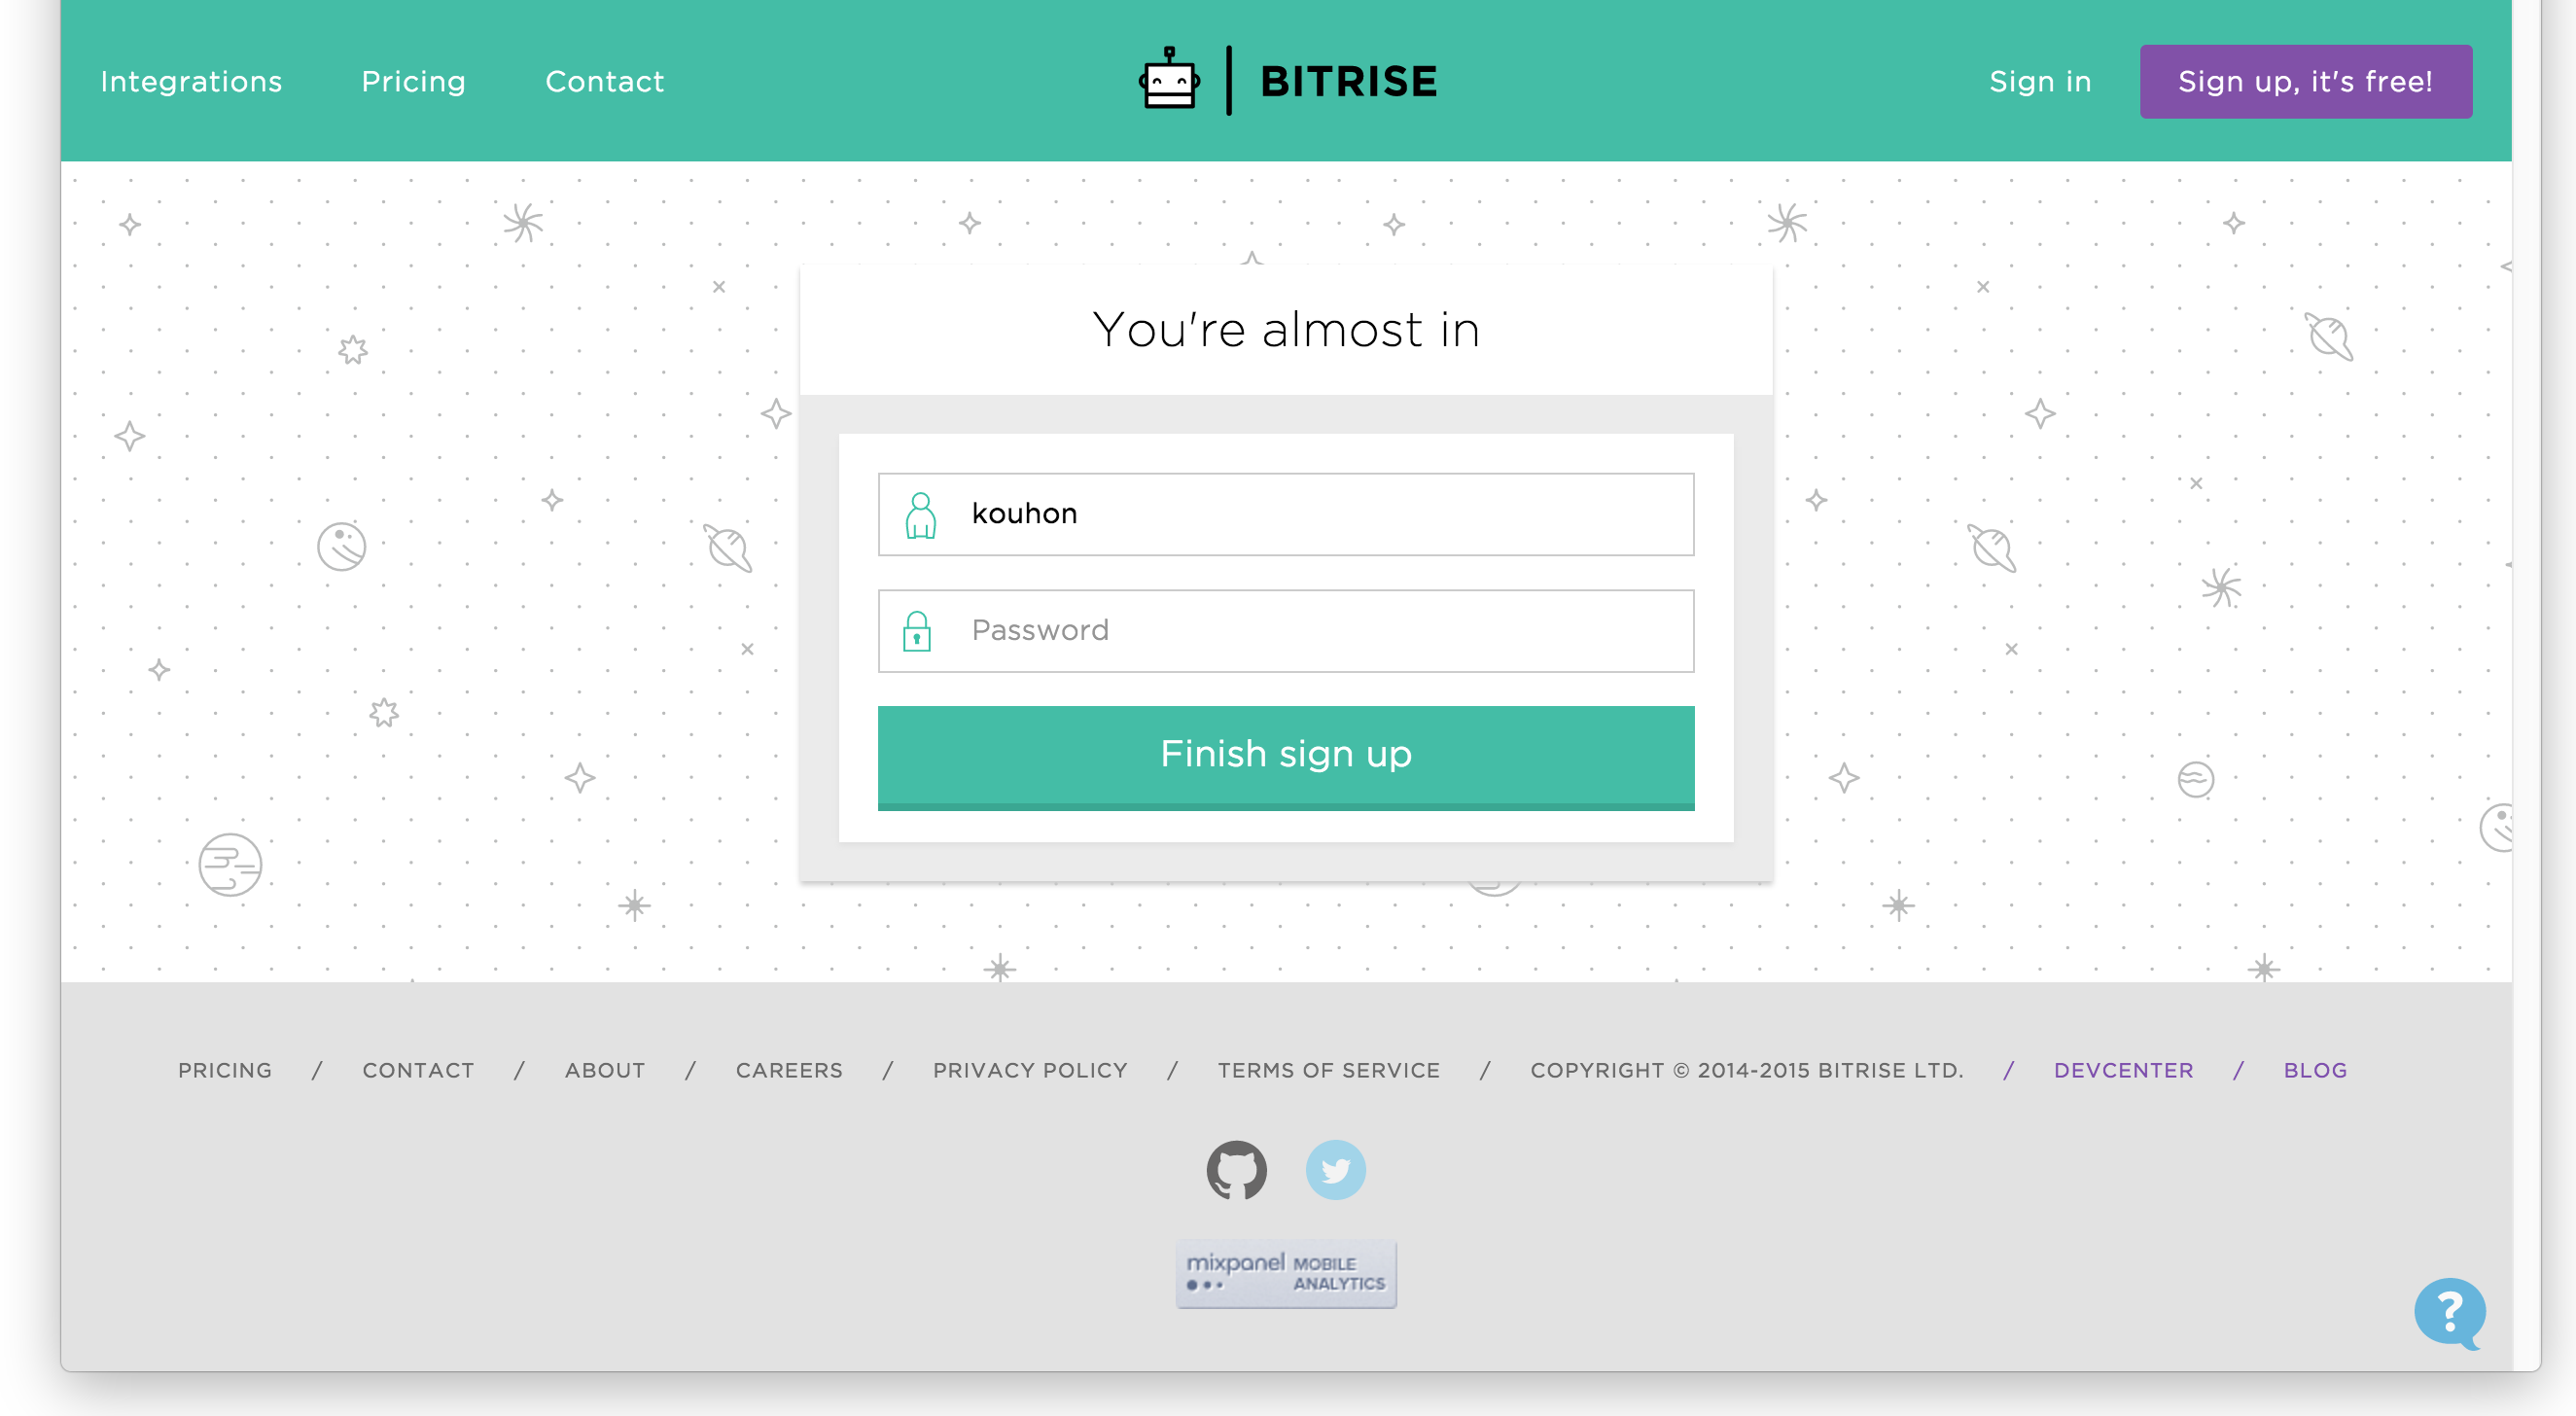 bitrise-sign-up-almost-in.png